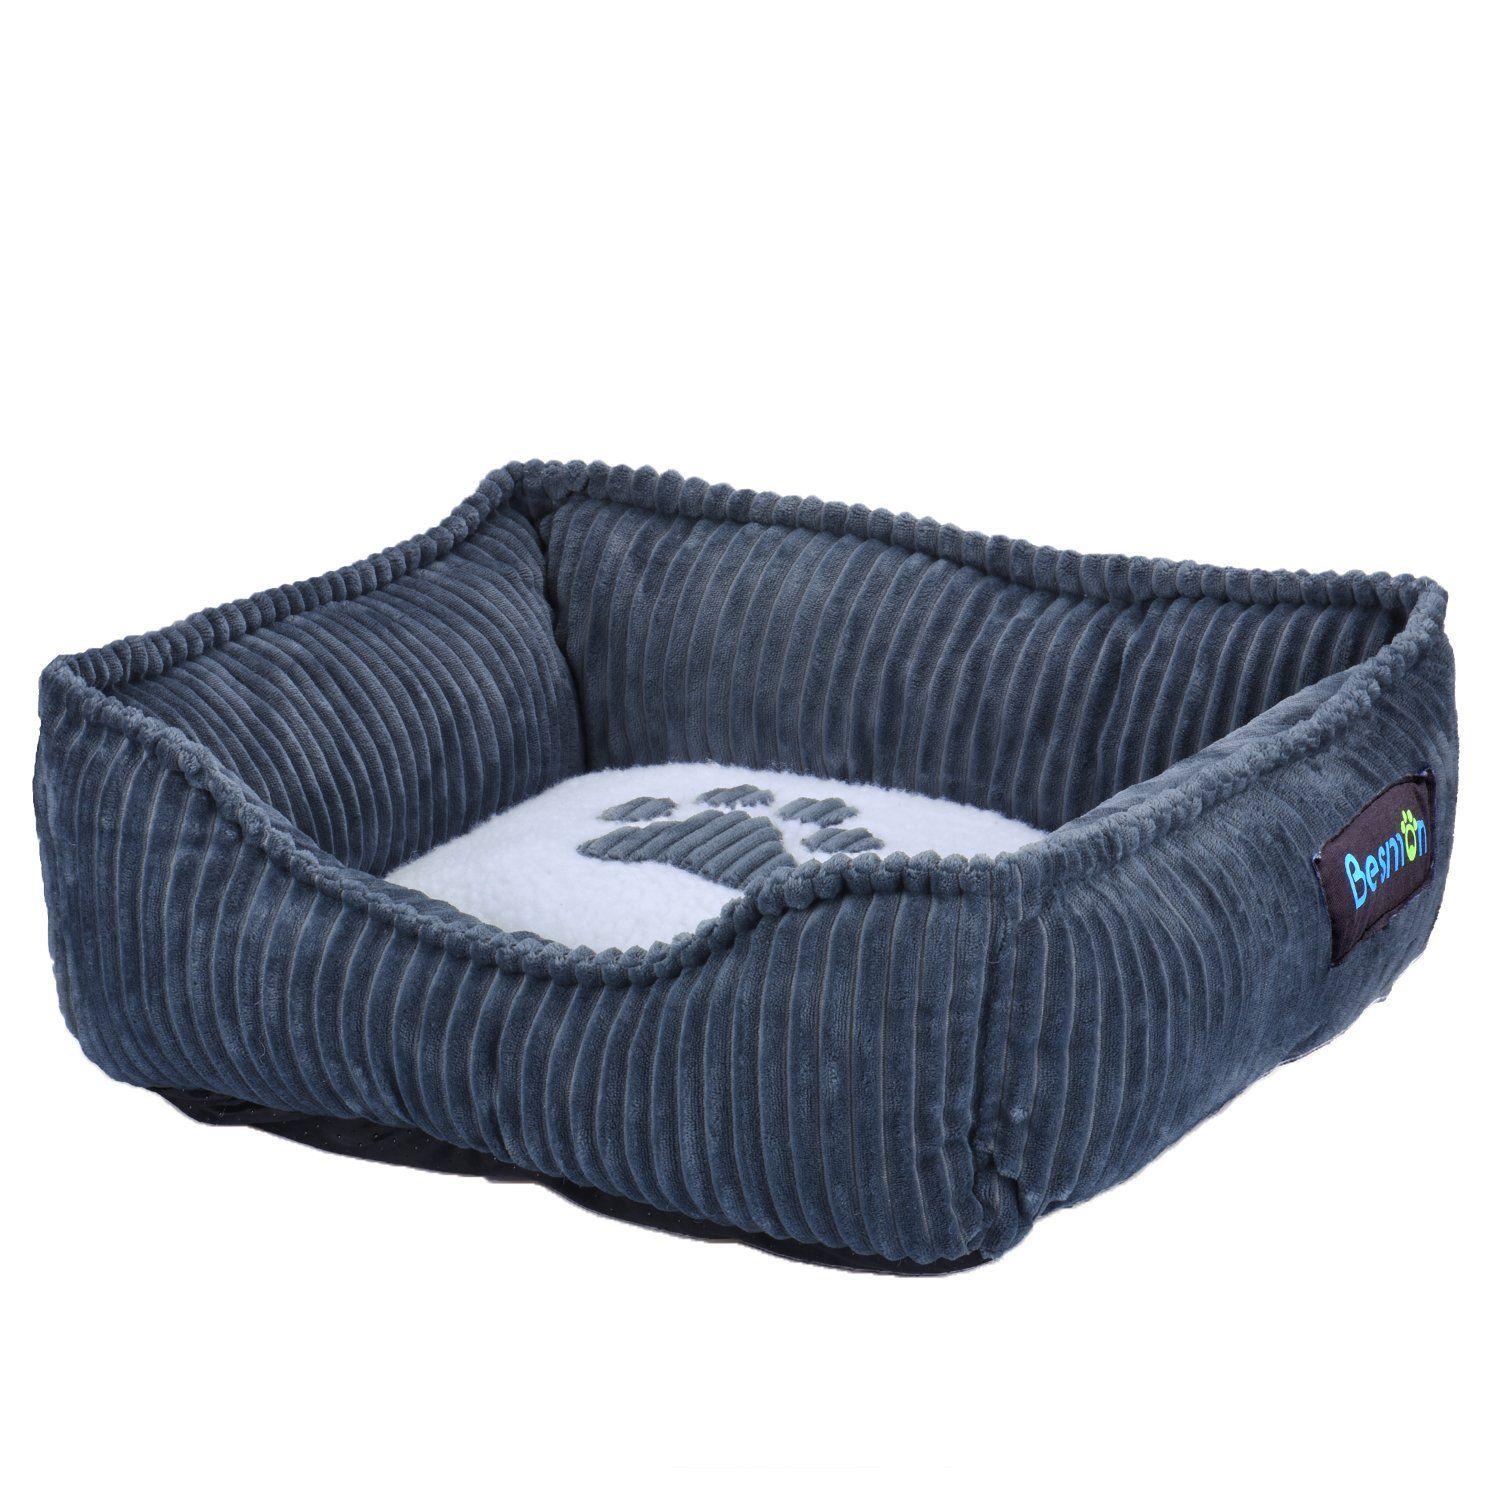 Pin by Cat House on Cat Beds and Furniture Dog bed, Cat